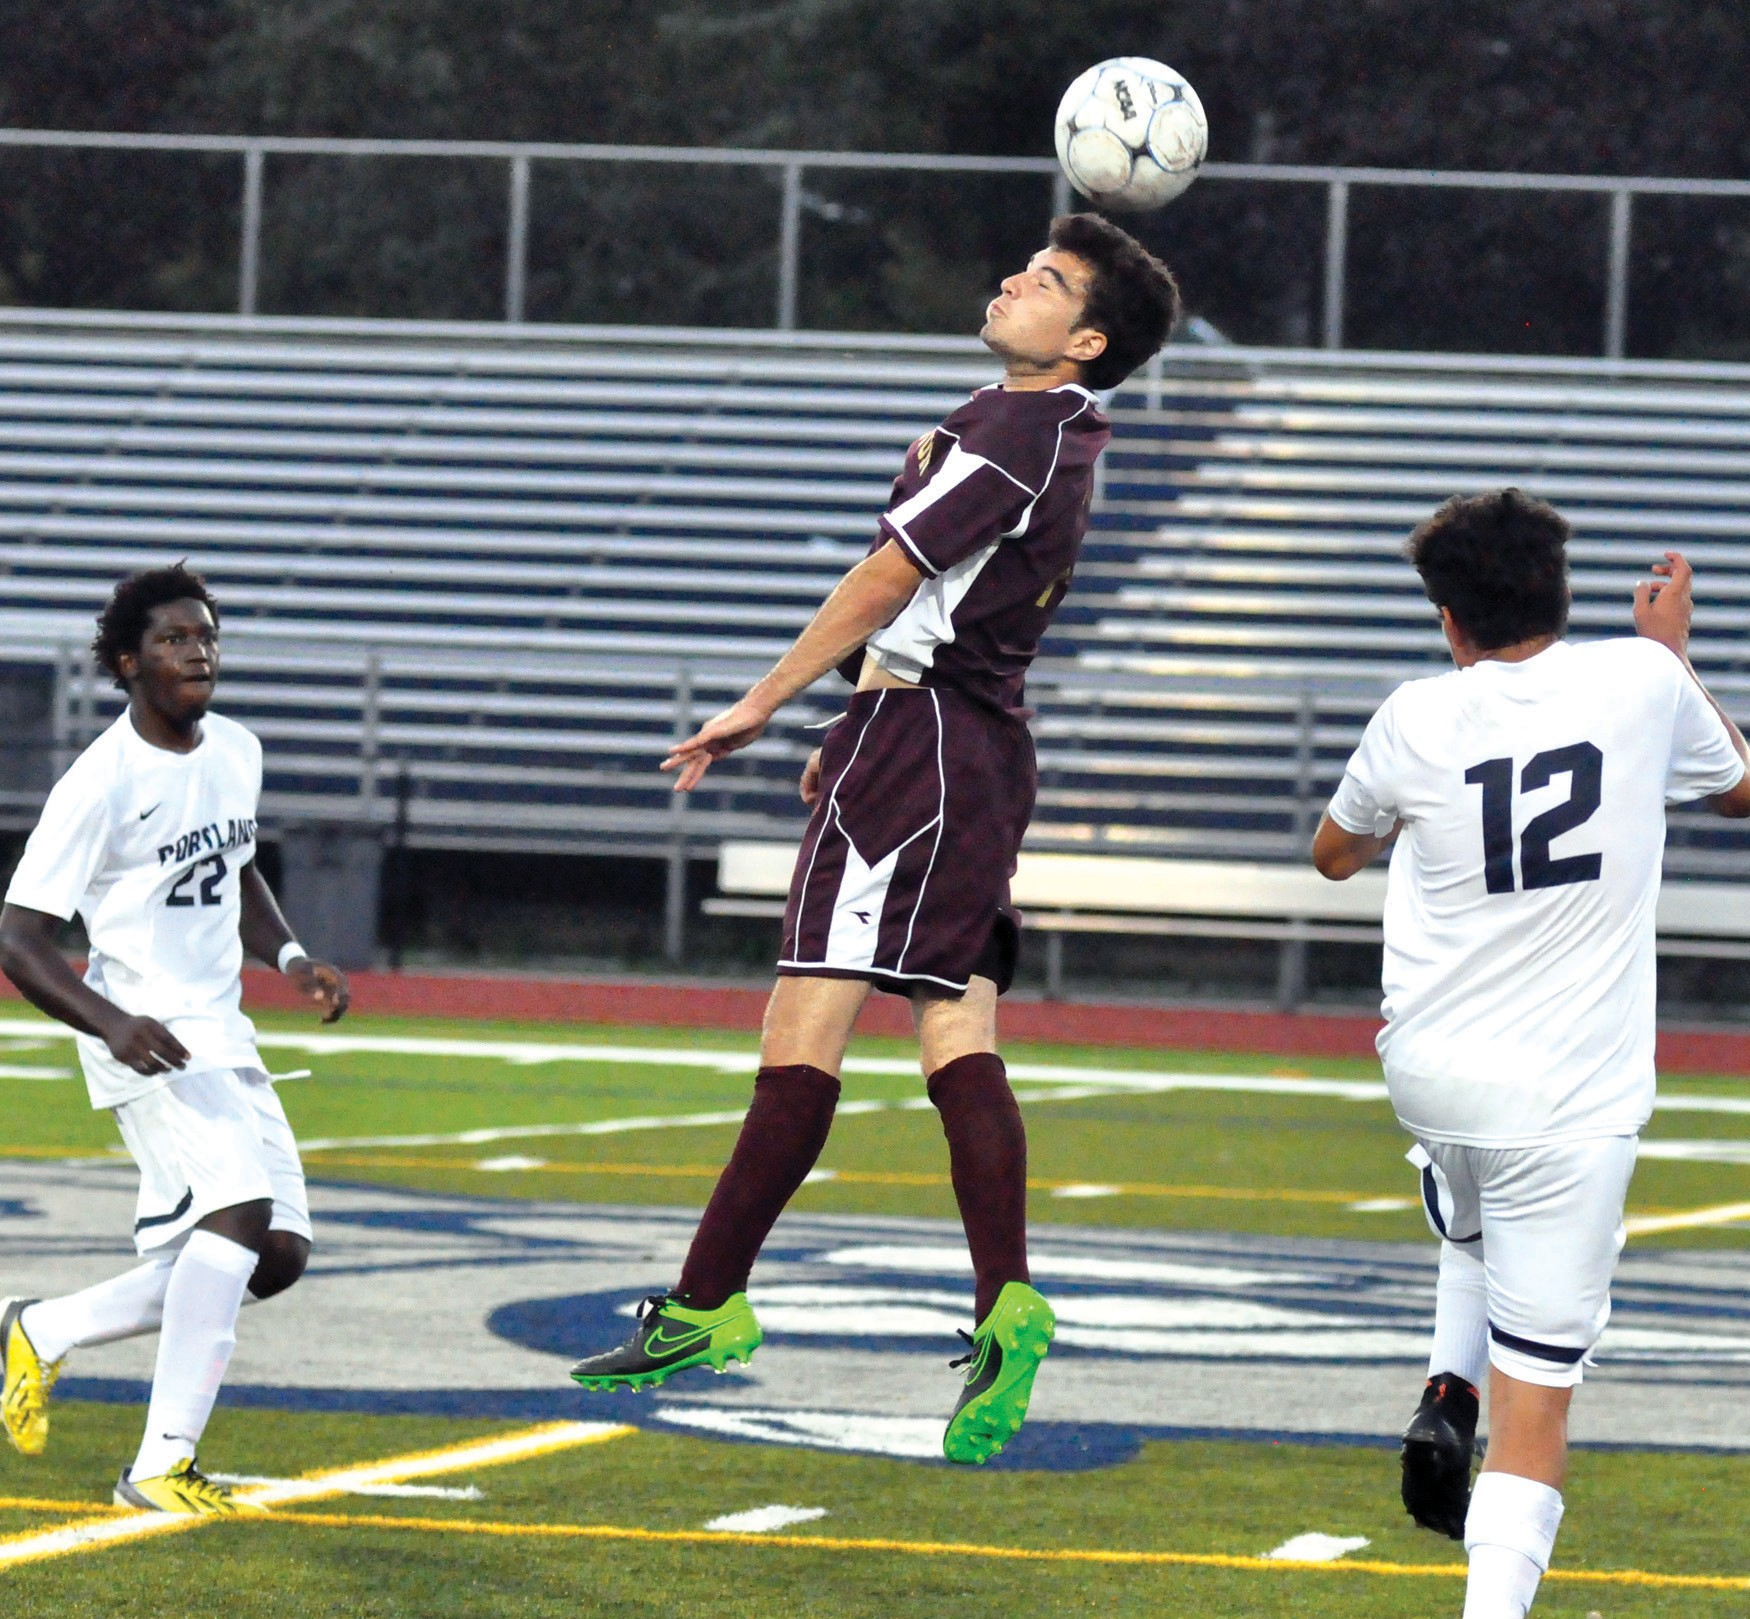 Thornton Academy's Cameron Twombly, center, heads the ball between Portland's Wade Faria (22) and Erick Molina-Garcia (12) during the Trojans' 0-0 draw with Portland at Fitzpatrick Stadium in Portland Tuesday.